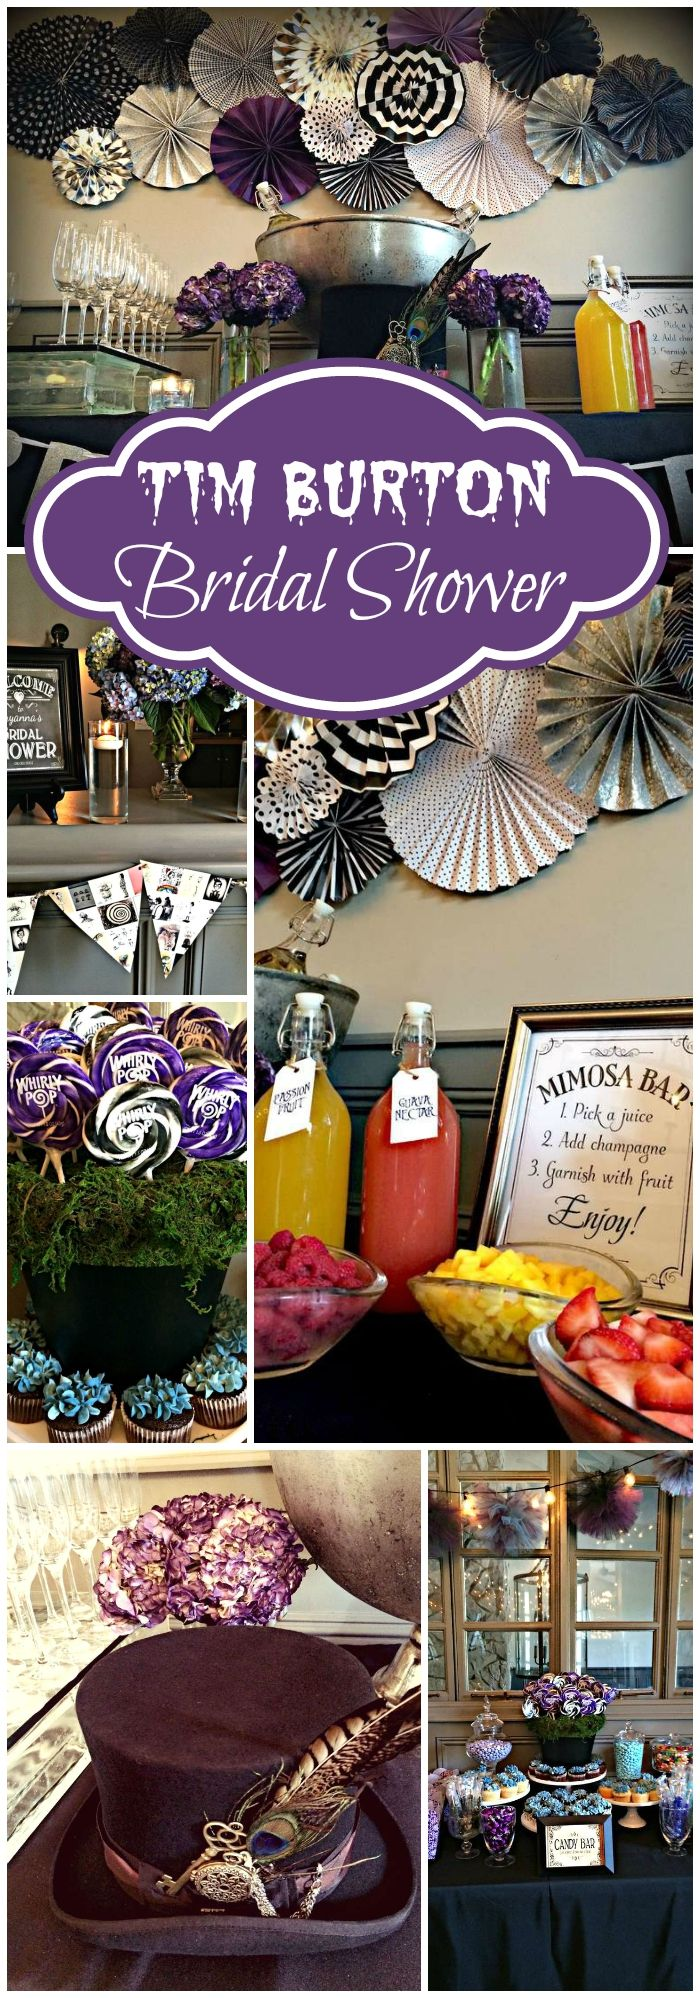 Black White Purple Blue Bridalwedding Shower Tim Burton